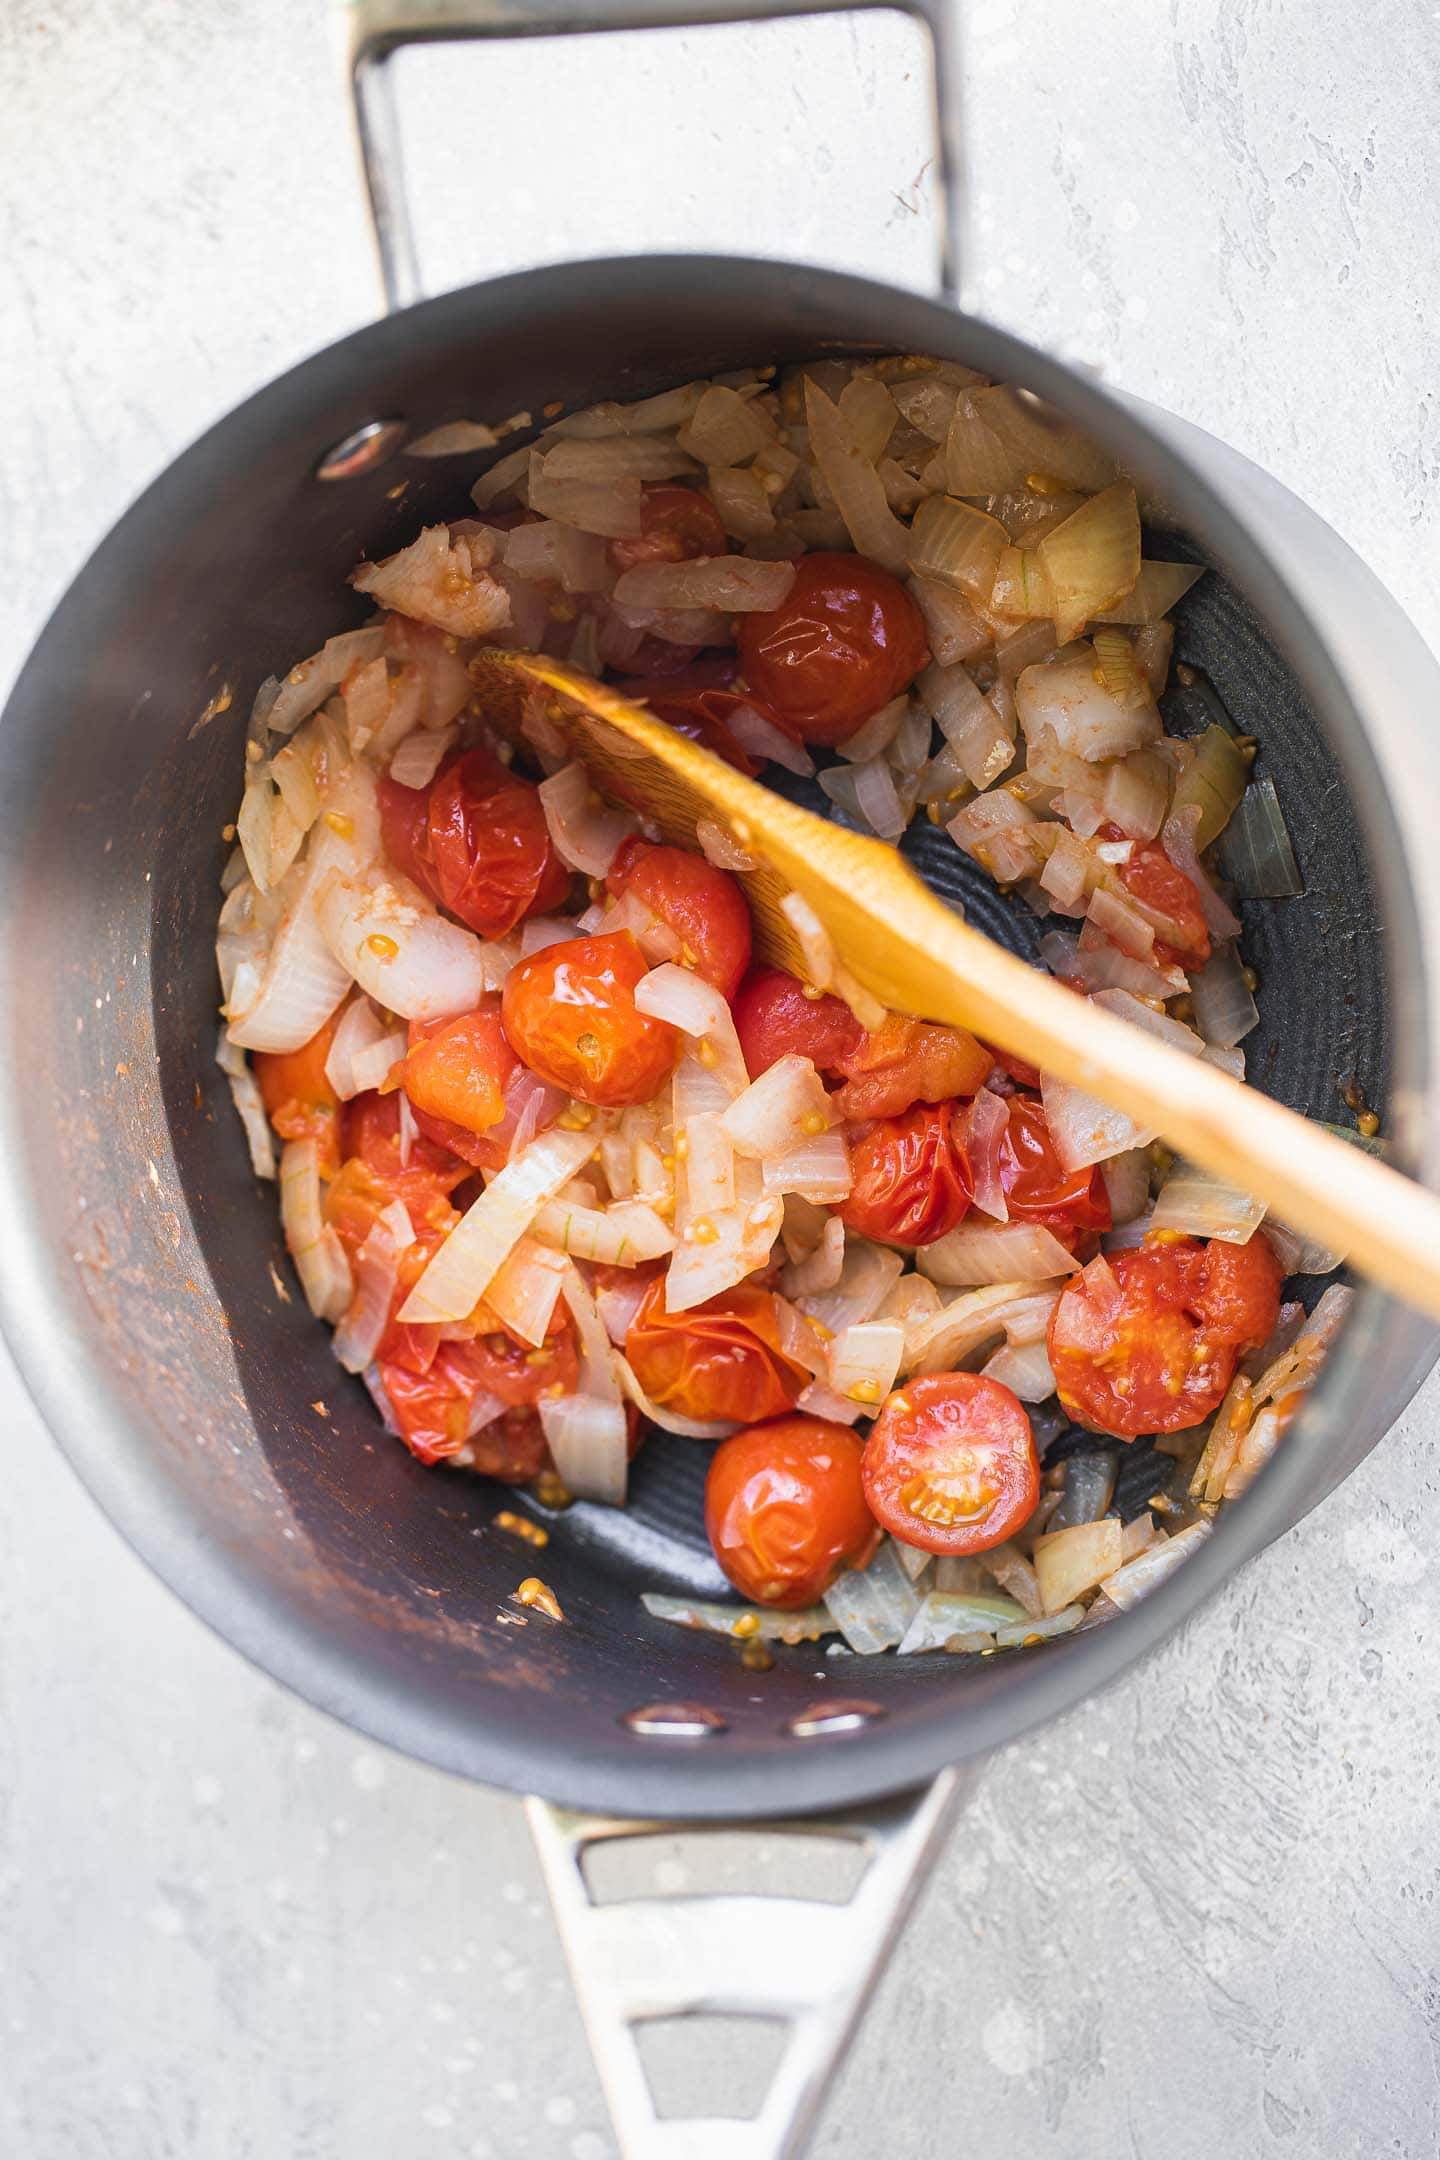 Tomatoes and onions in a saucepan